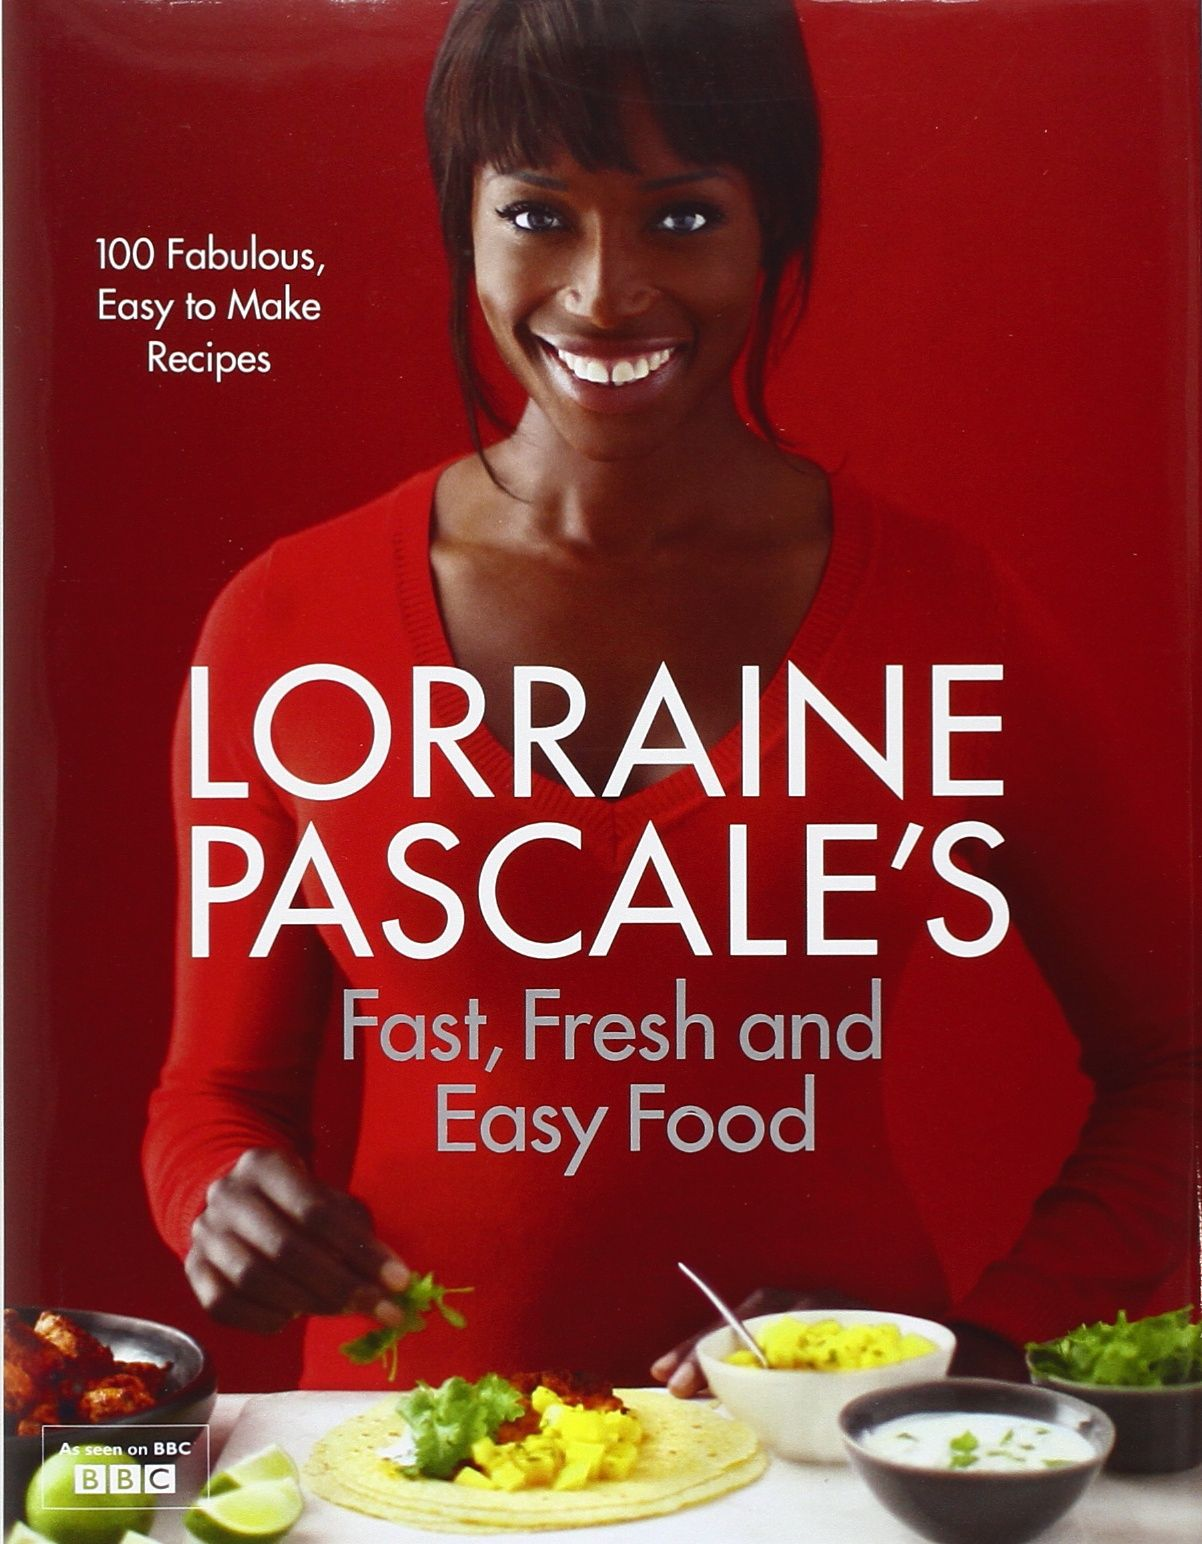 Cocina Lorraine Pascale Amazon Fr Lorraine Pascale S Fast Fresh And Easy Food